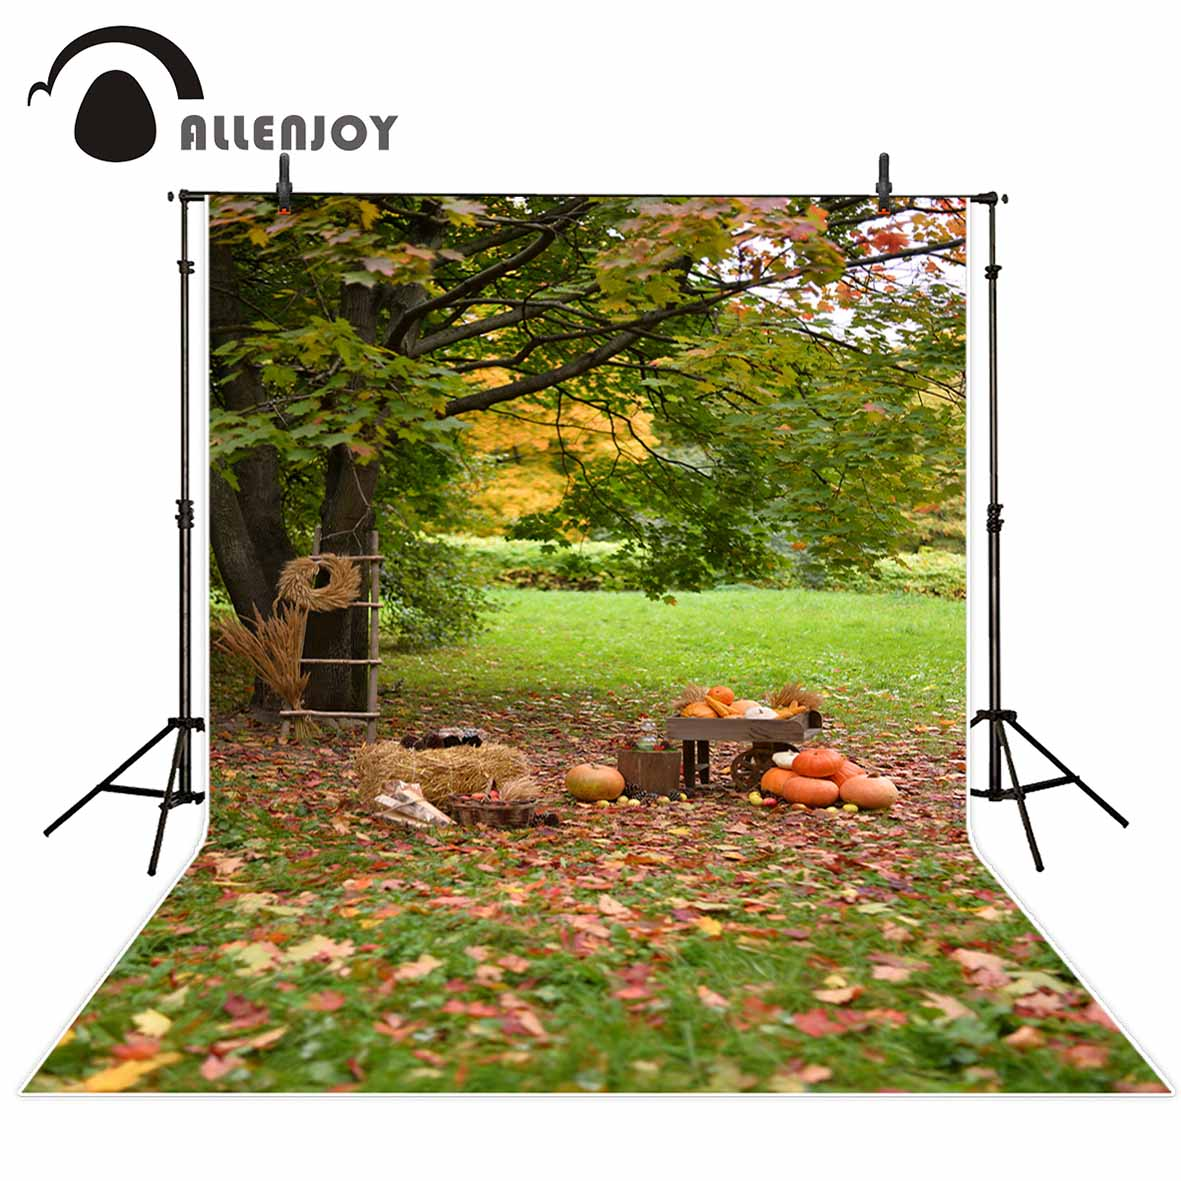 Allenjoy photography backdrops Pumpkin countryside meadow woods ladder children background backgrounds for photo studio